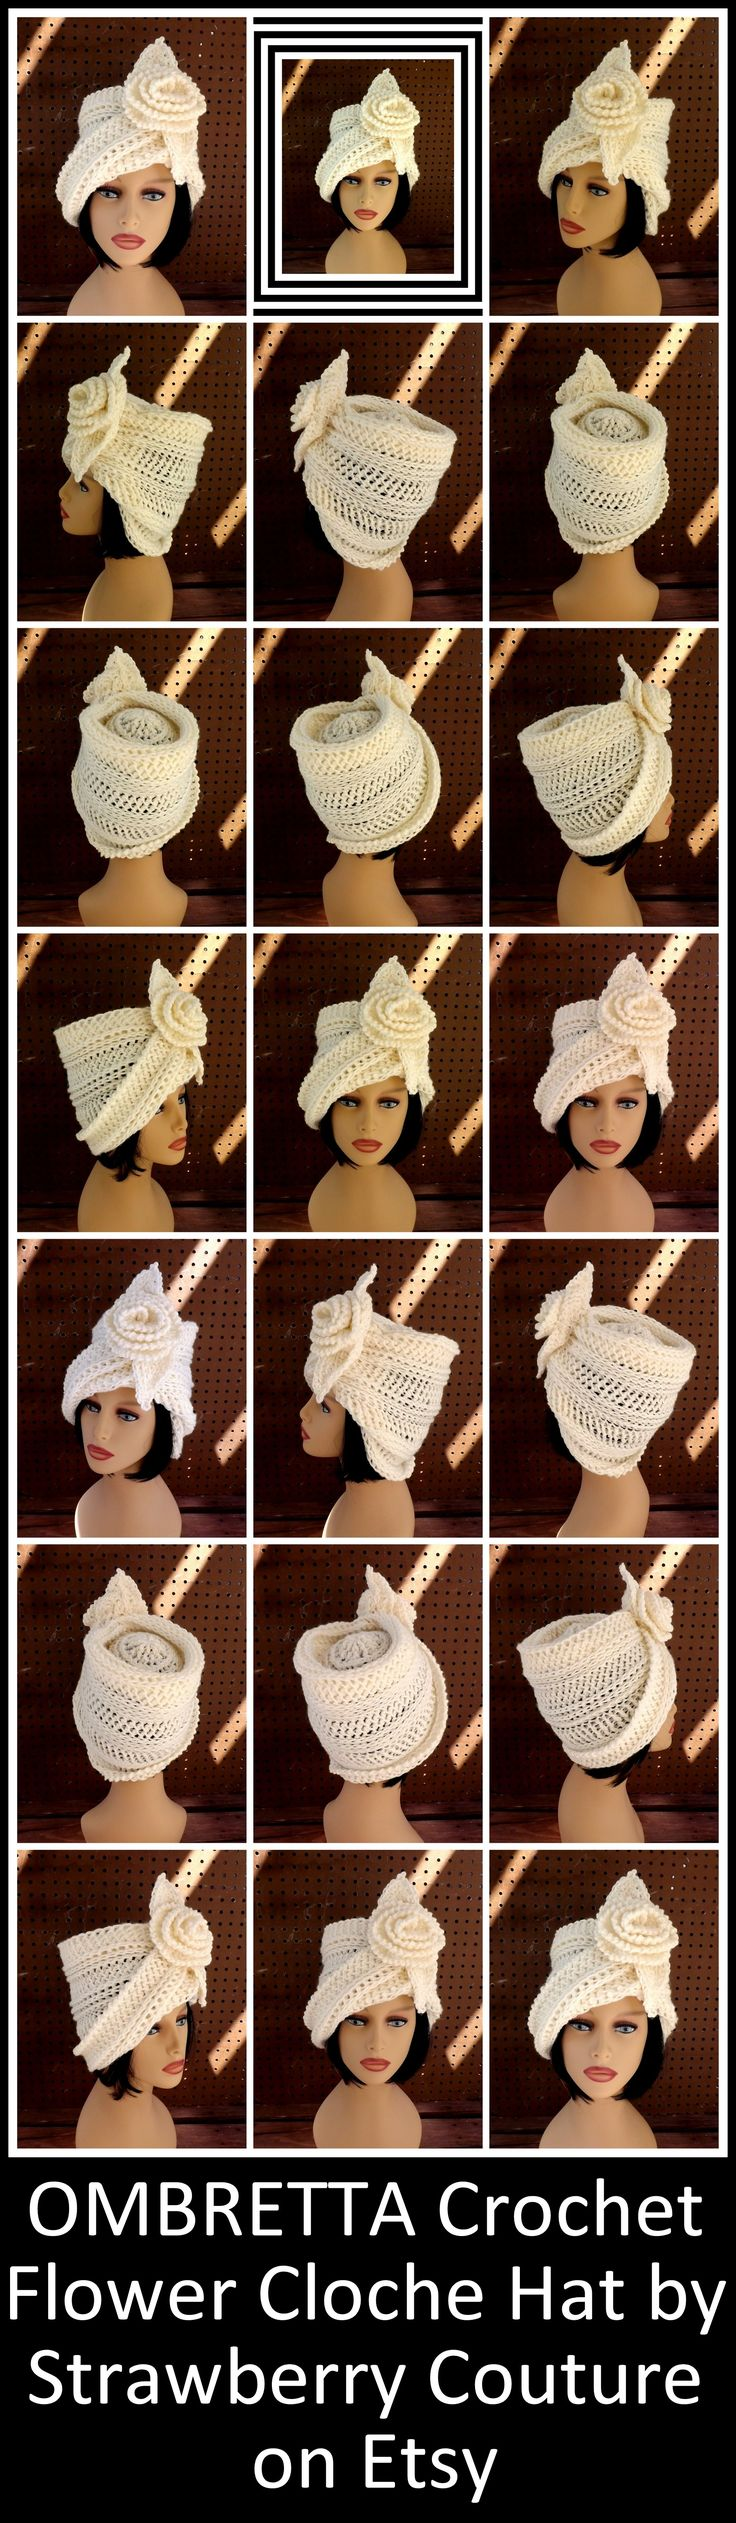 Can purchase Hat or Crochet Pattern!  //  ♡ THIS HAT IS FABULOUS!!! AND SHE HAS MANY MORE, TOO. HERE'S WHAT I THINK... [haha, like you could stop me from sharing! ;)]...IF YOU HAVE TO WEAR A HAT IN THE WINTER, WHY NOT WEAR ONE THAT BIG, BOLD, AND REALLY, WELL, FABULOUS!!!  ♥A